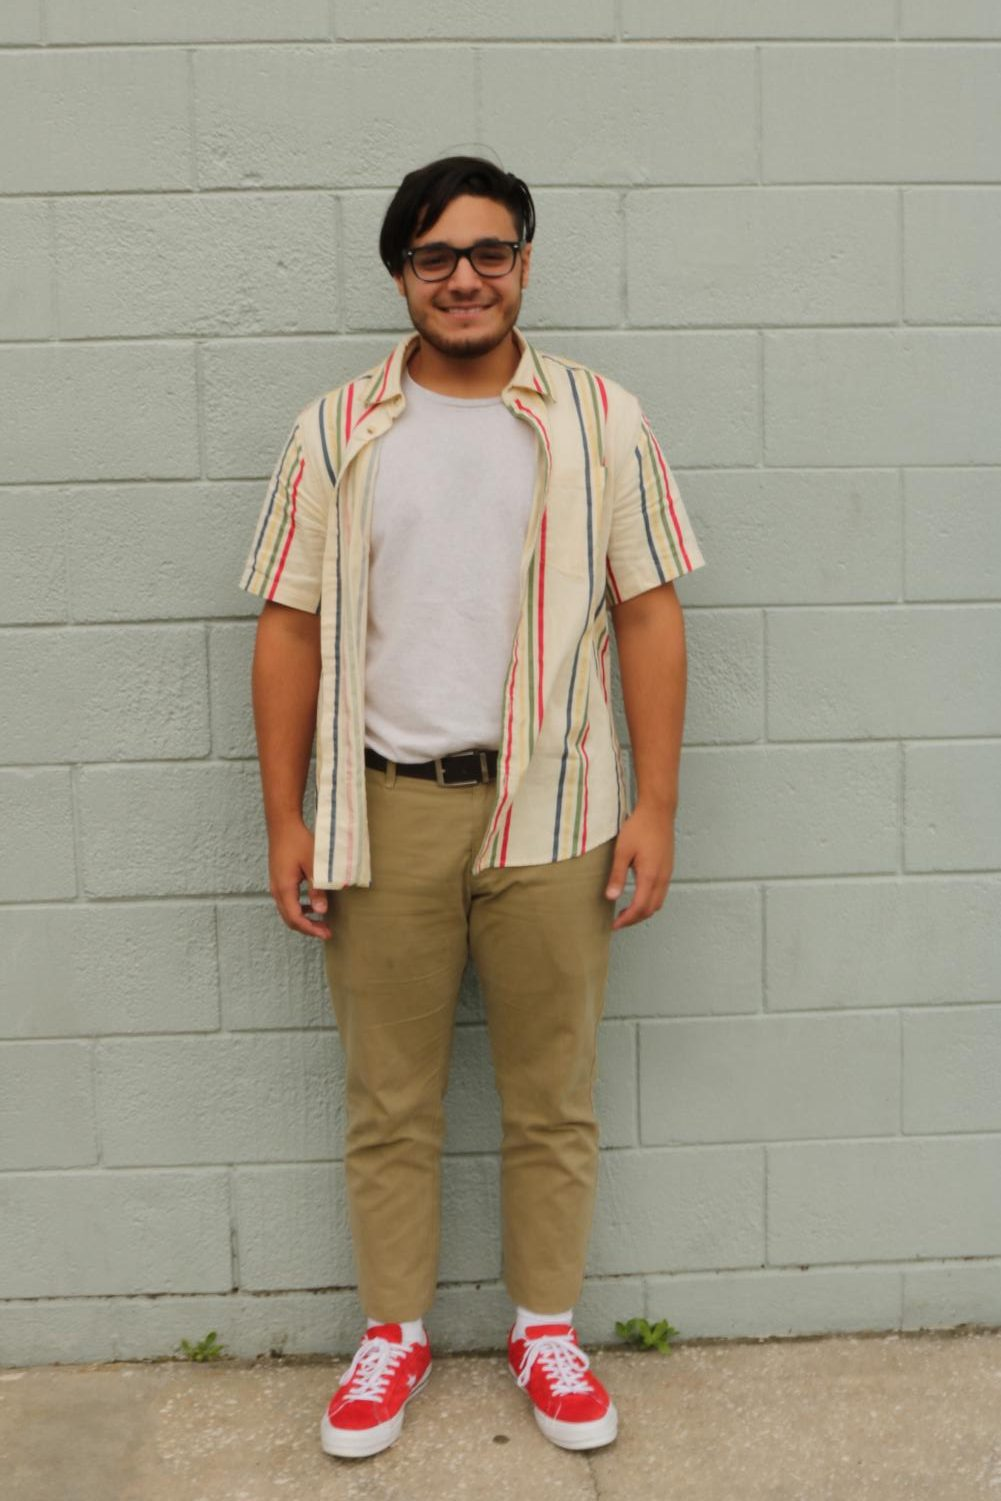 Coordination%3B+many+students+make+sure+their+whole+outfit+pairs+together%2C+socks+and+all.+For+Jorge+Deglado+%28%2720%29%2C+that+meant+matching+his+striped+red+button+down+shirt+with+his+red+shoes%2C+and+dressing+it+up+with+long+slacks+and+a+belt.